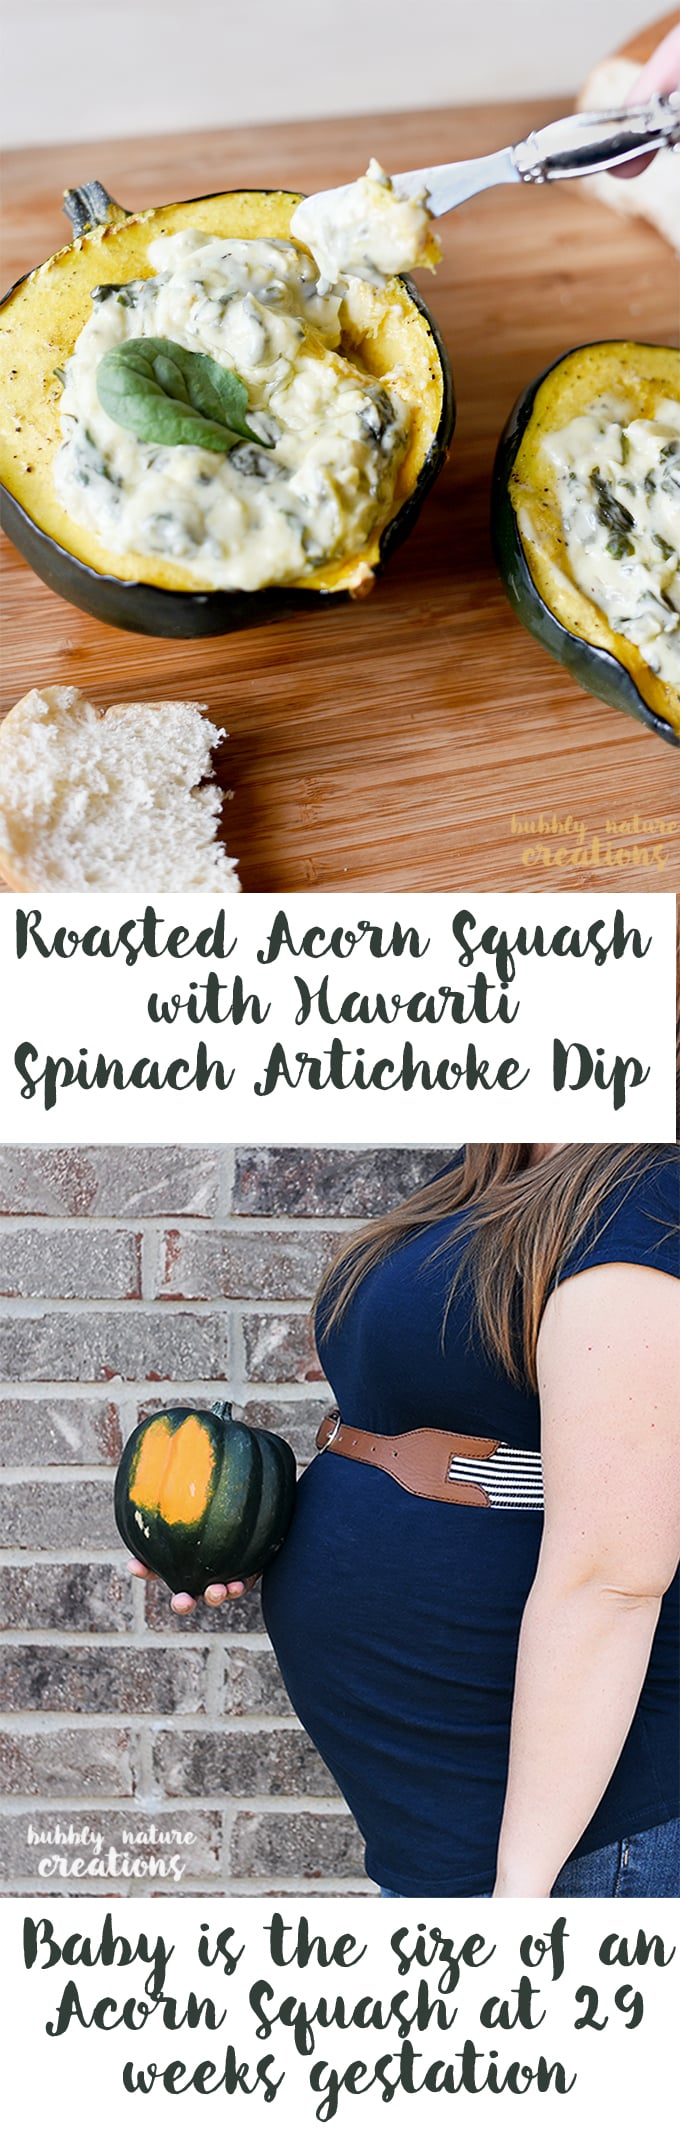 Roasted Acorn Squash with Havarti Spinach Artichoke Dip! This is so good and perfect to celebrate the 29th week of pregnancy!